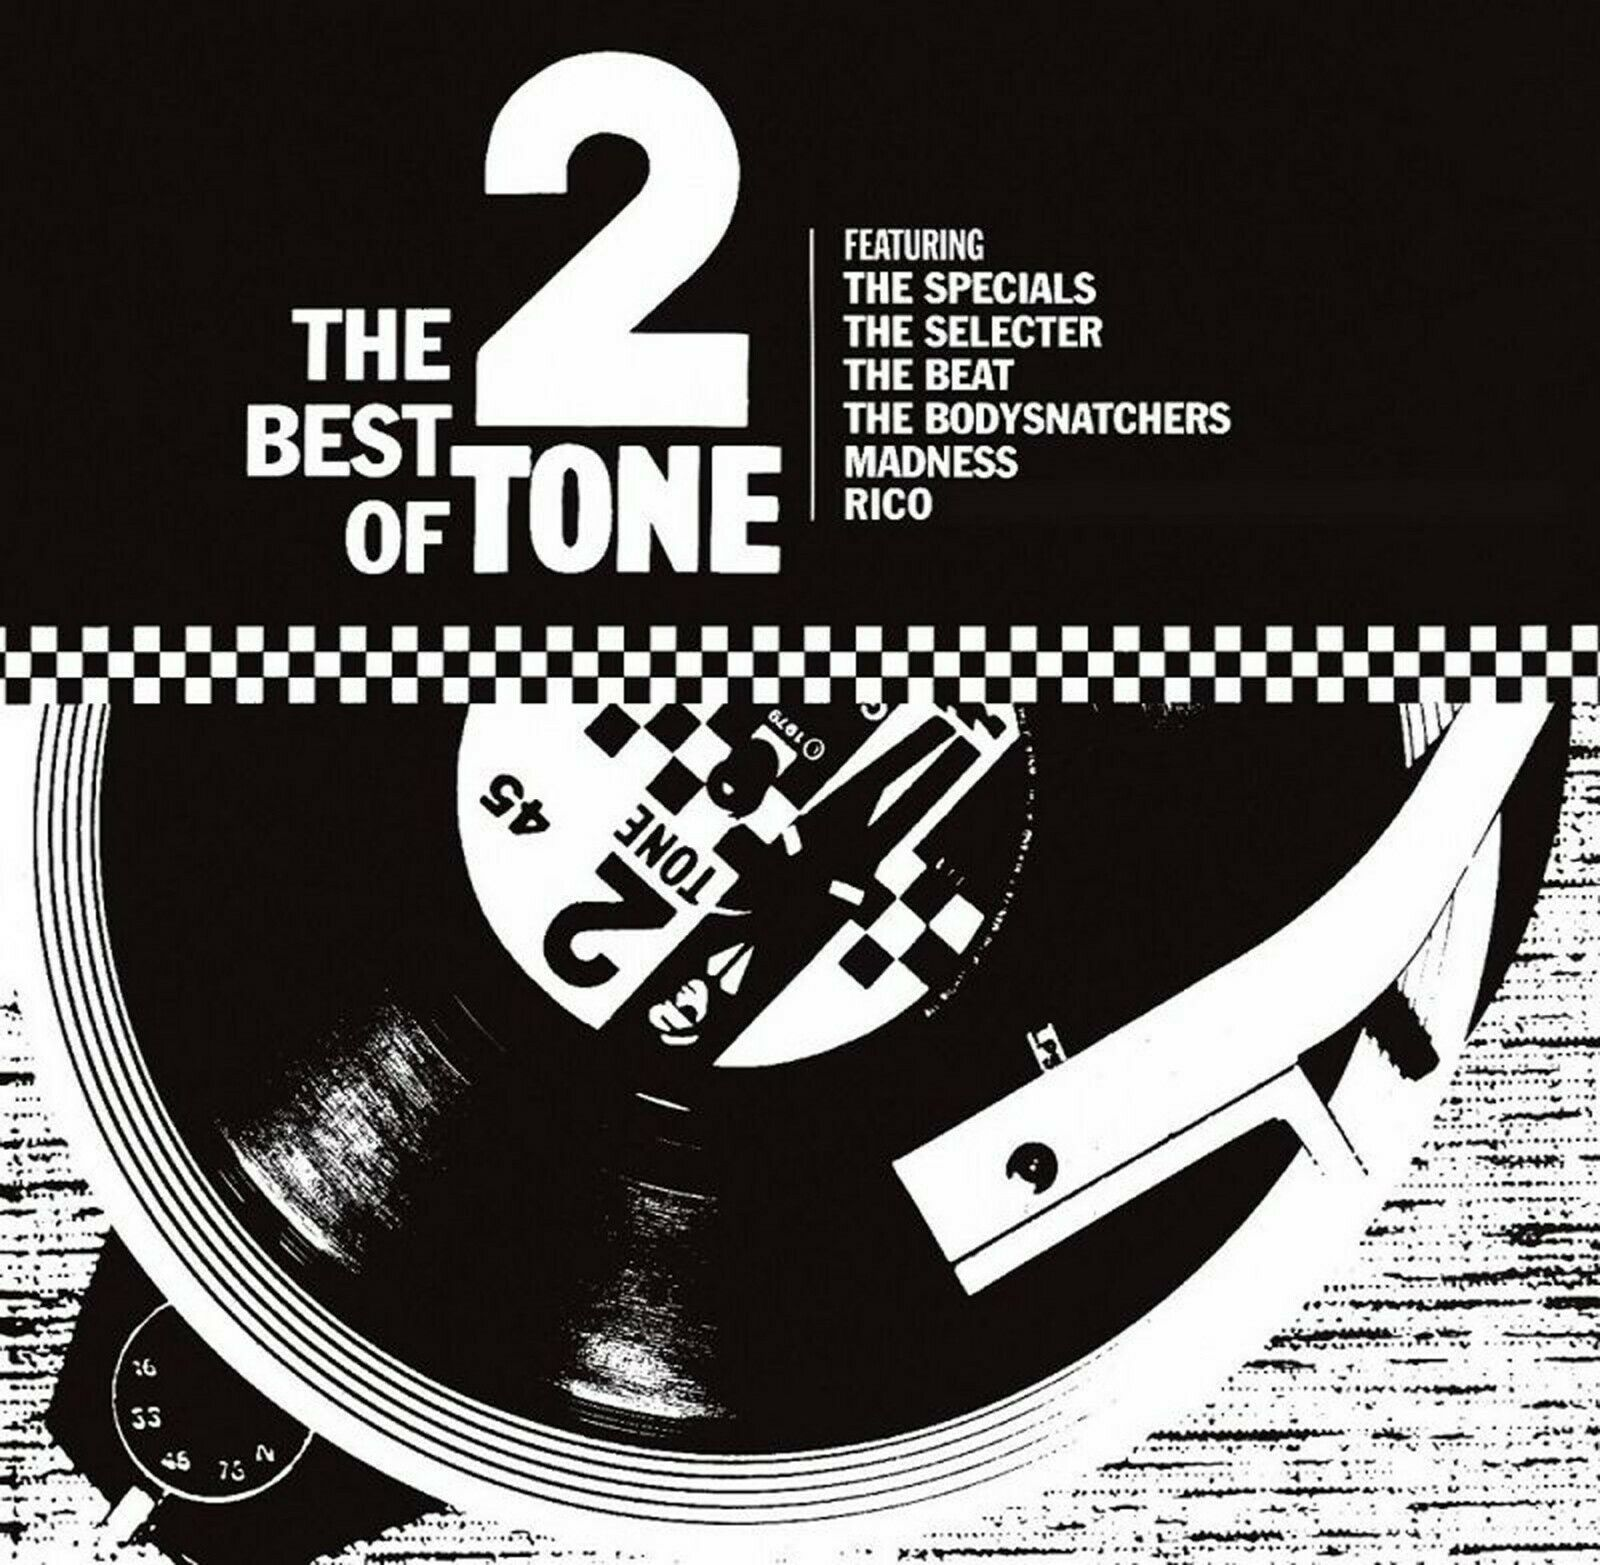 2-TONE The Best Of 2 Tone - Various Artists LP x 2 NEW Double Vinyl SEALED New